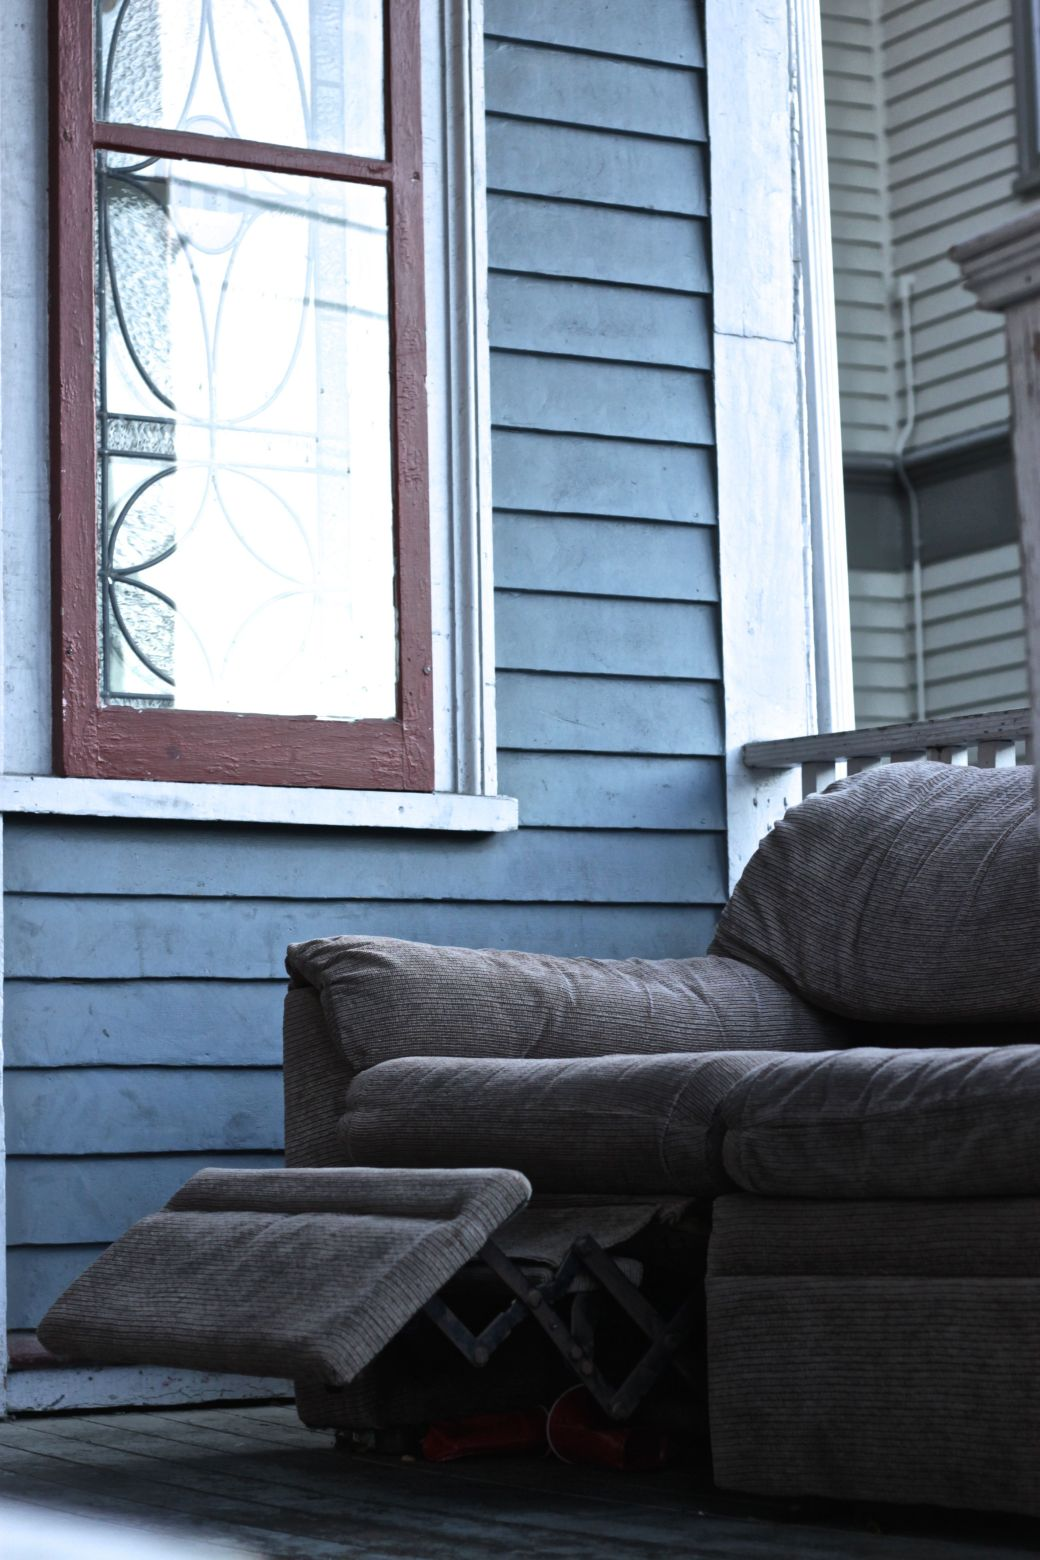 rhode island providence college hill chair on porch